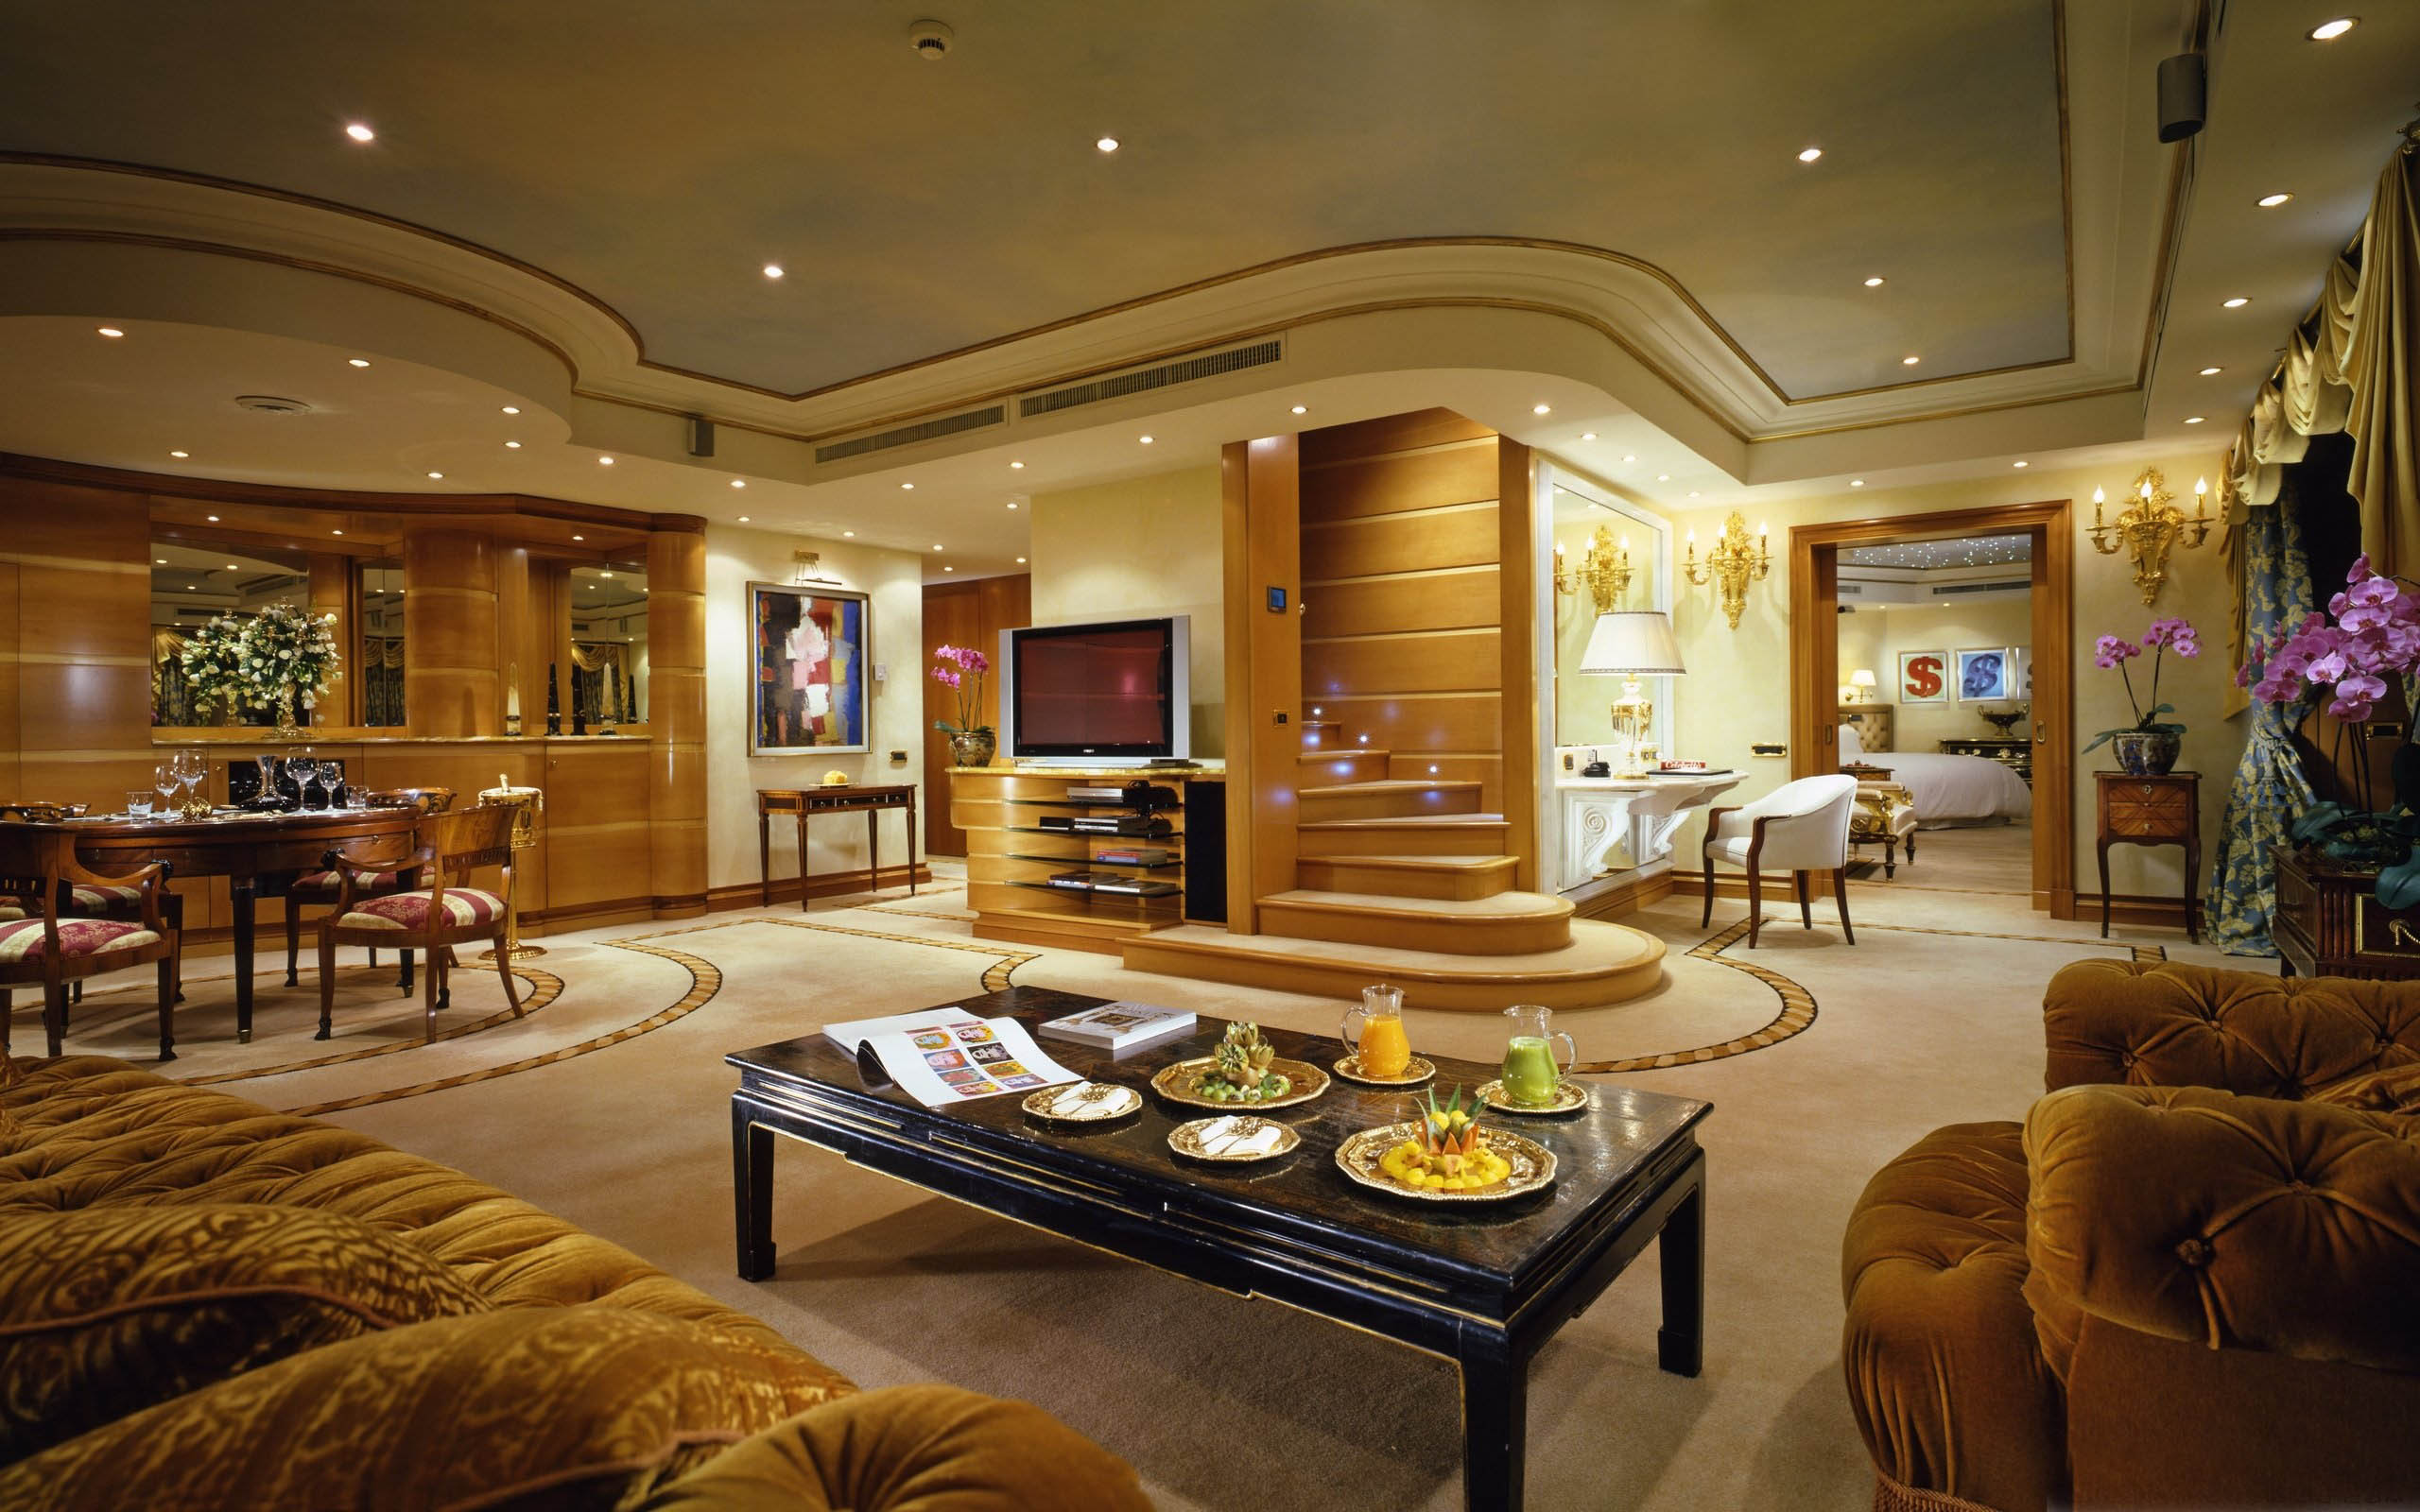 Top 10 Luxury Apartments in Chennai